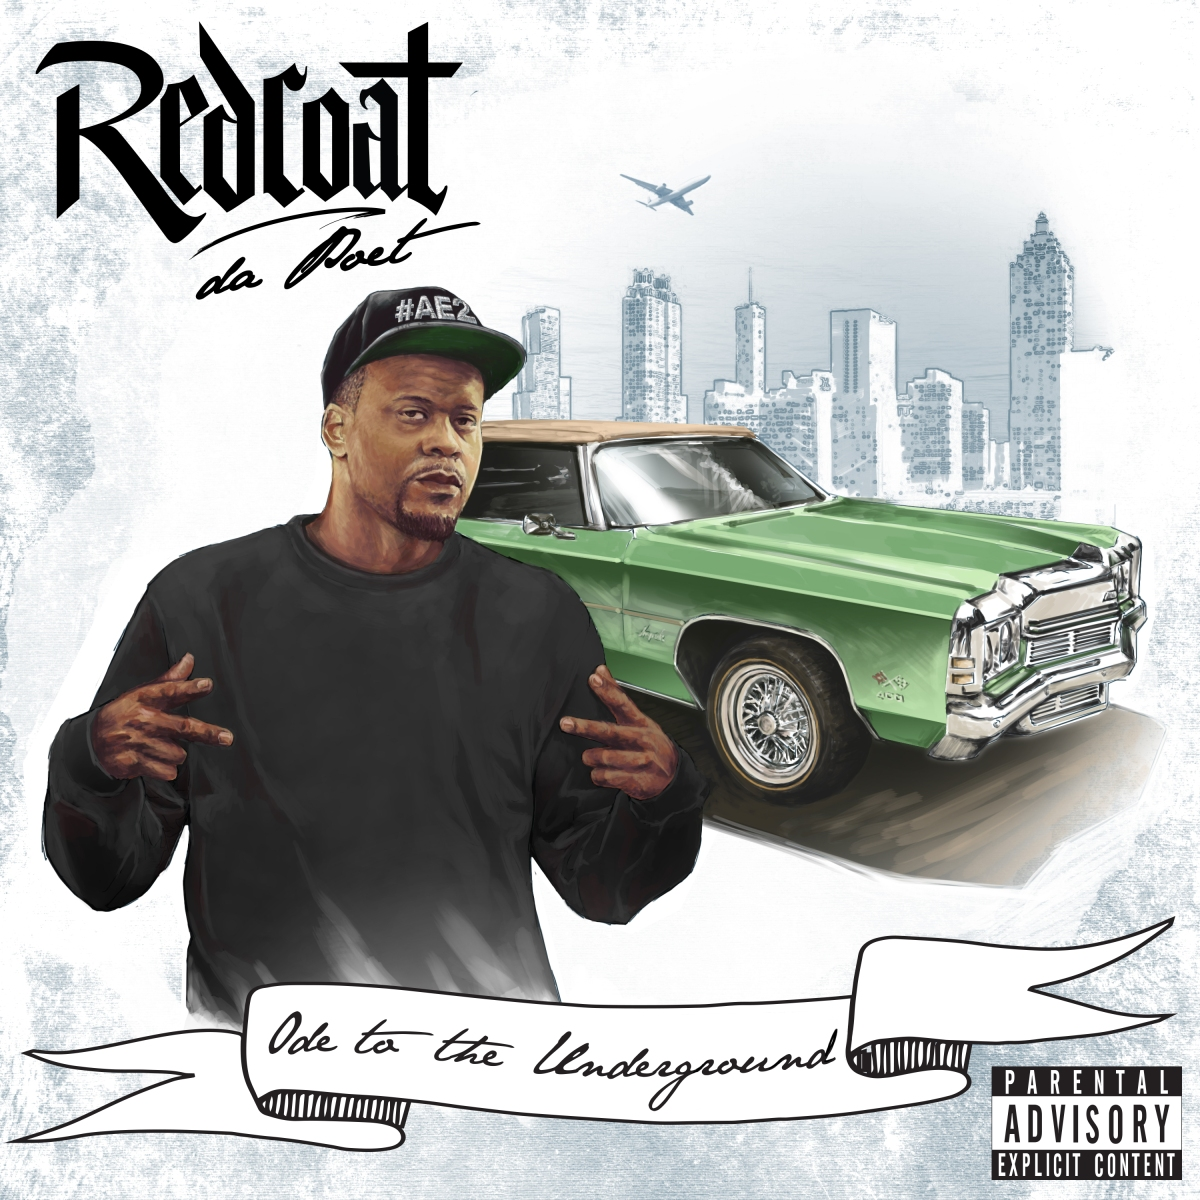 Redcoat Da Poet : Ode To The Underground [ALBUM]